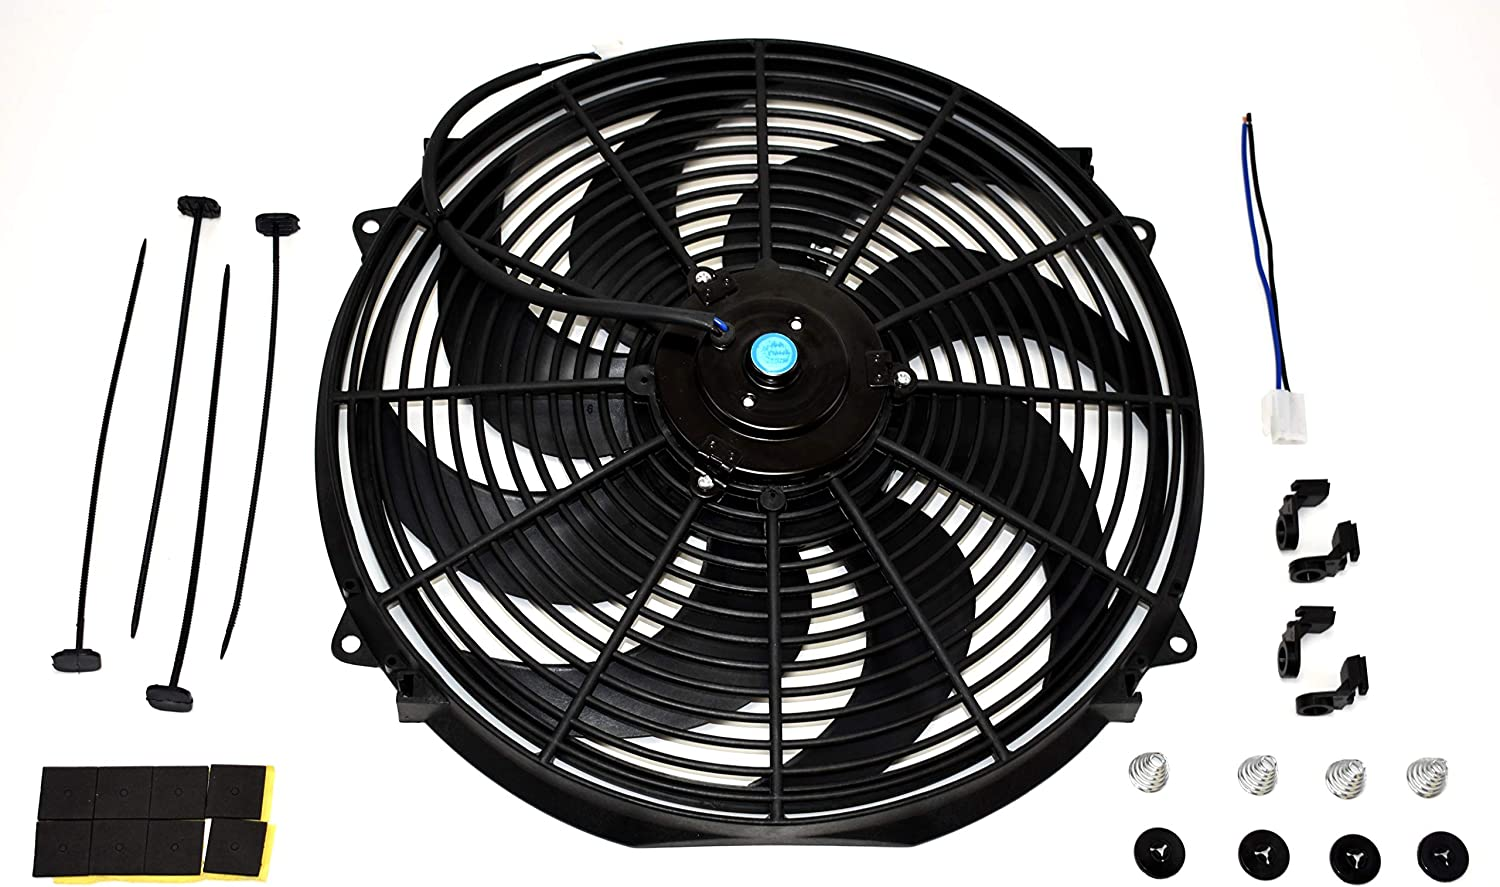 """A-Team Performance 160061 16"""" High Performance Heavy Duty 12V Black Radiator Electric Wide Curved Cooling Fan Assembly Kit 8 Blade FAN 3000 CFM"""